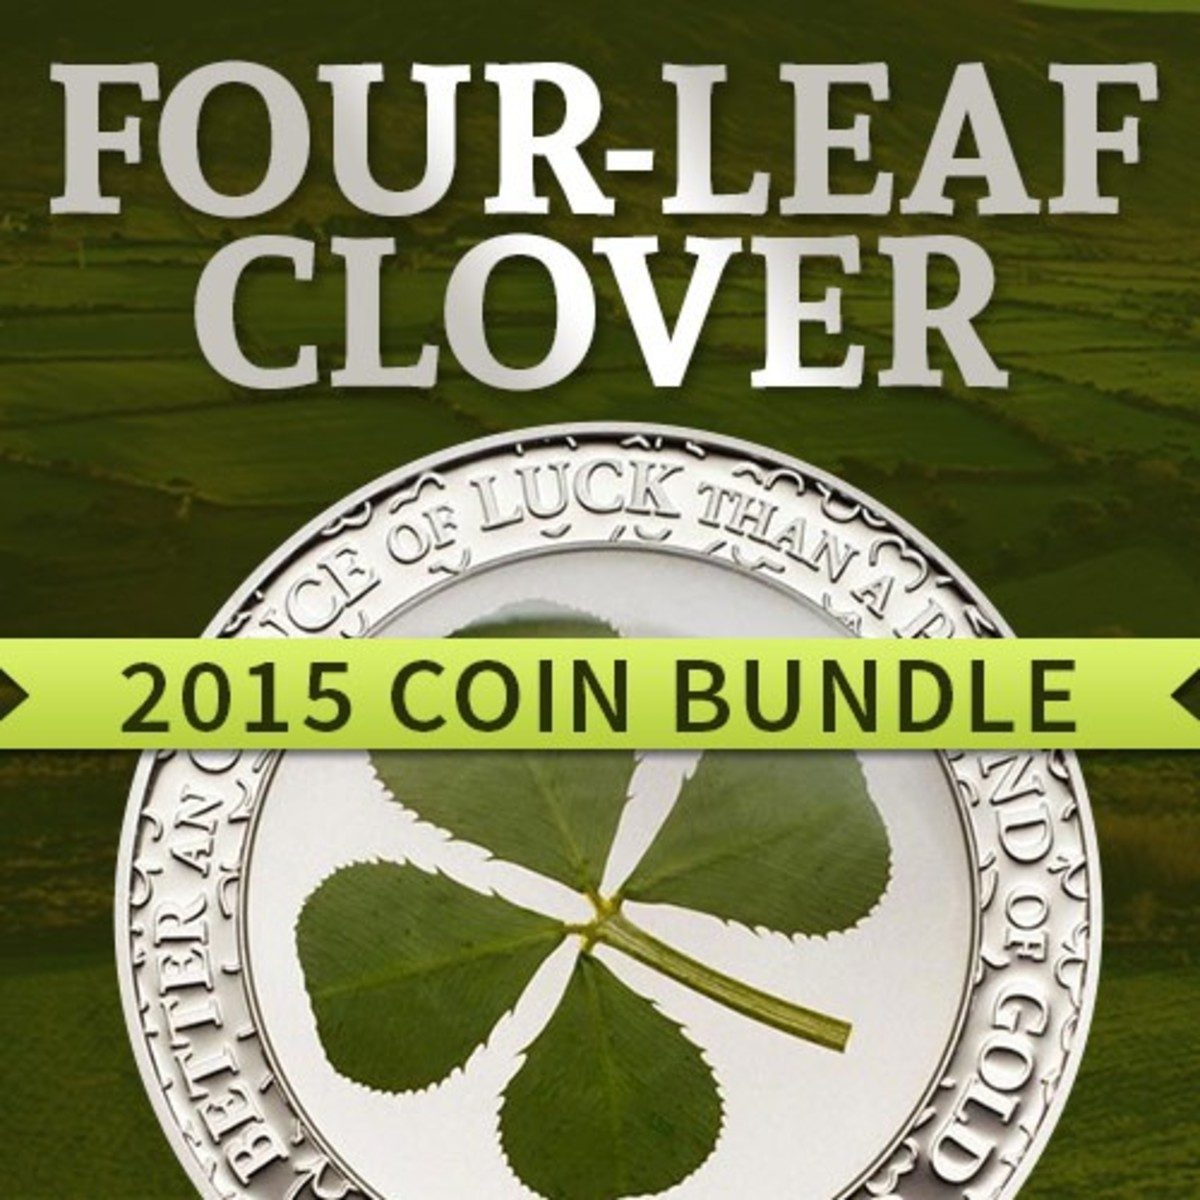 It's your lucky day! In celebration of St. Patrick's Day we're offering this special deal on two must-have items for any coin collector.